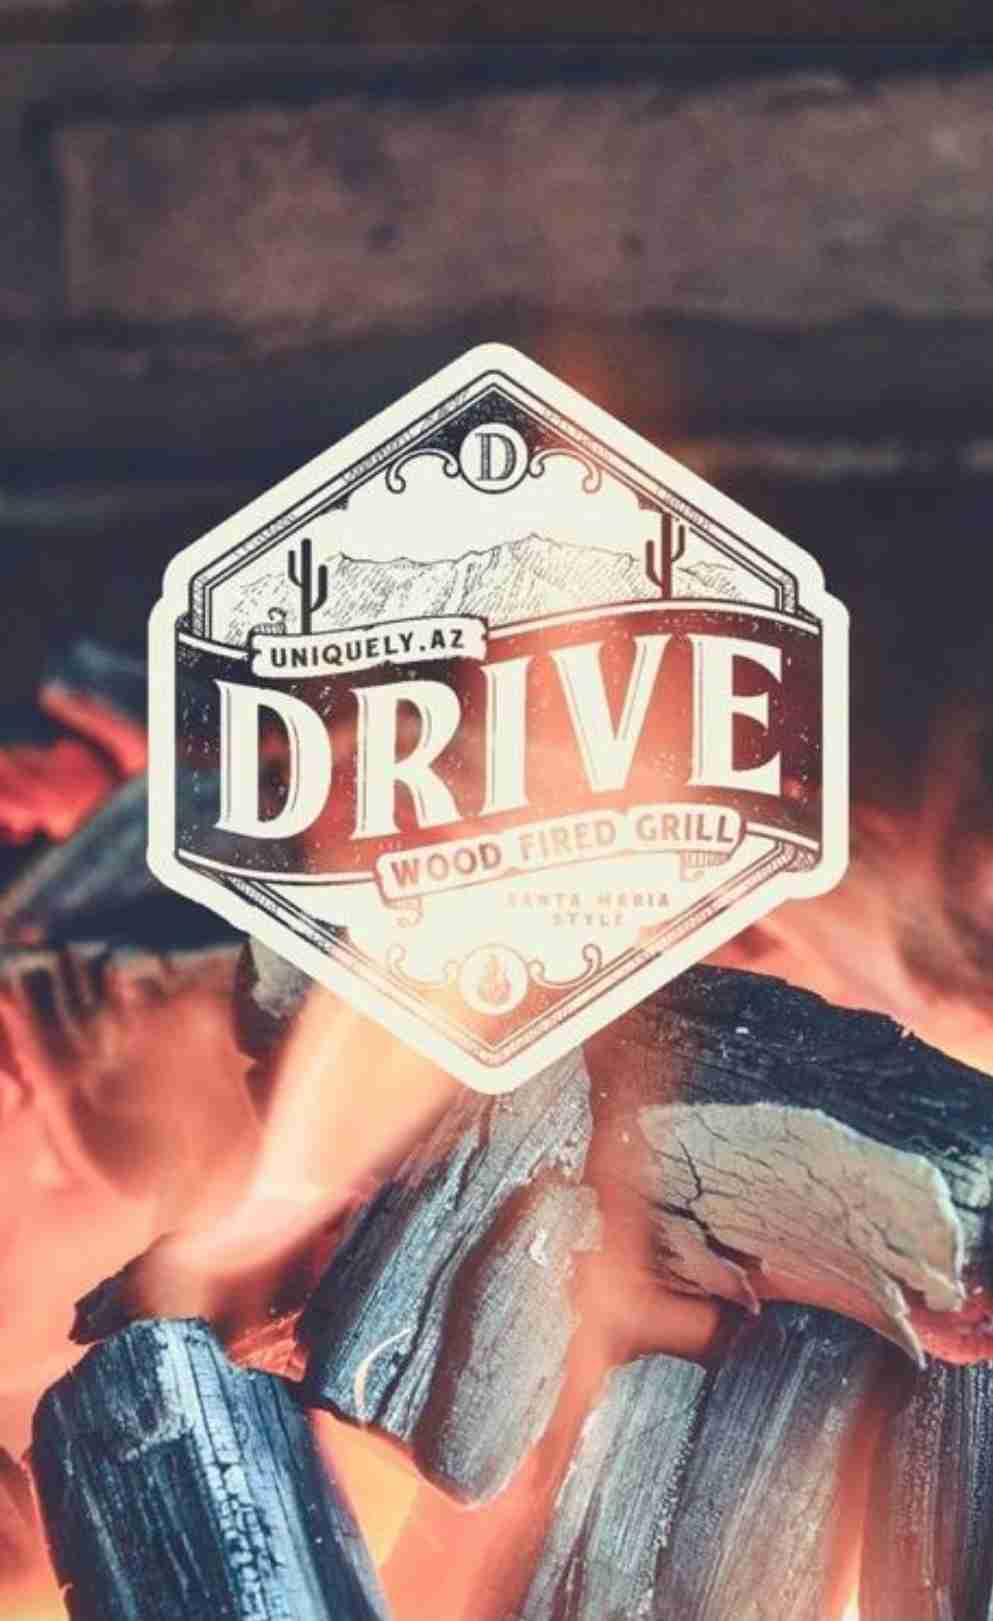 Drive wood fired grill